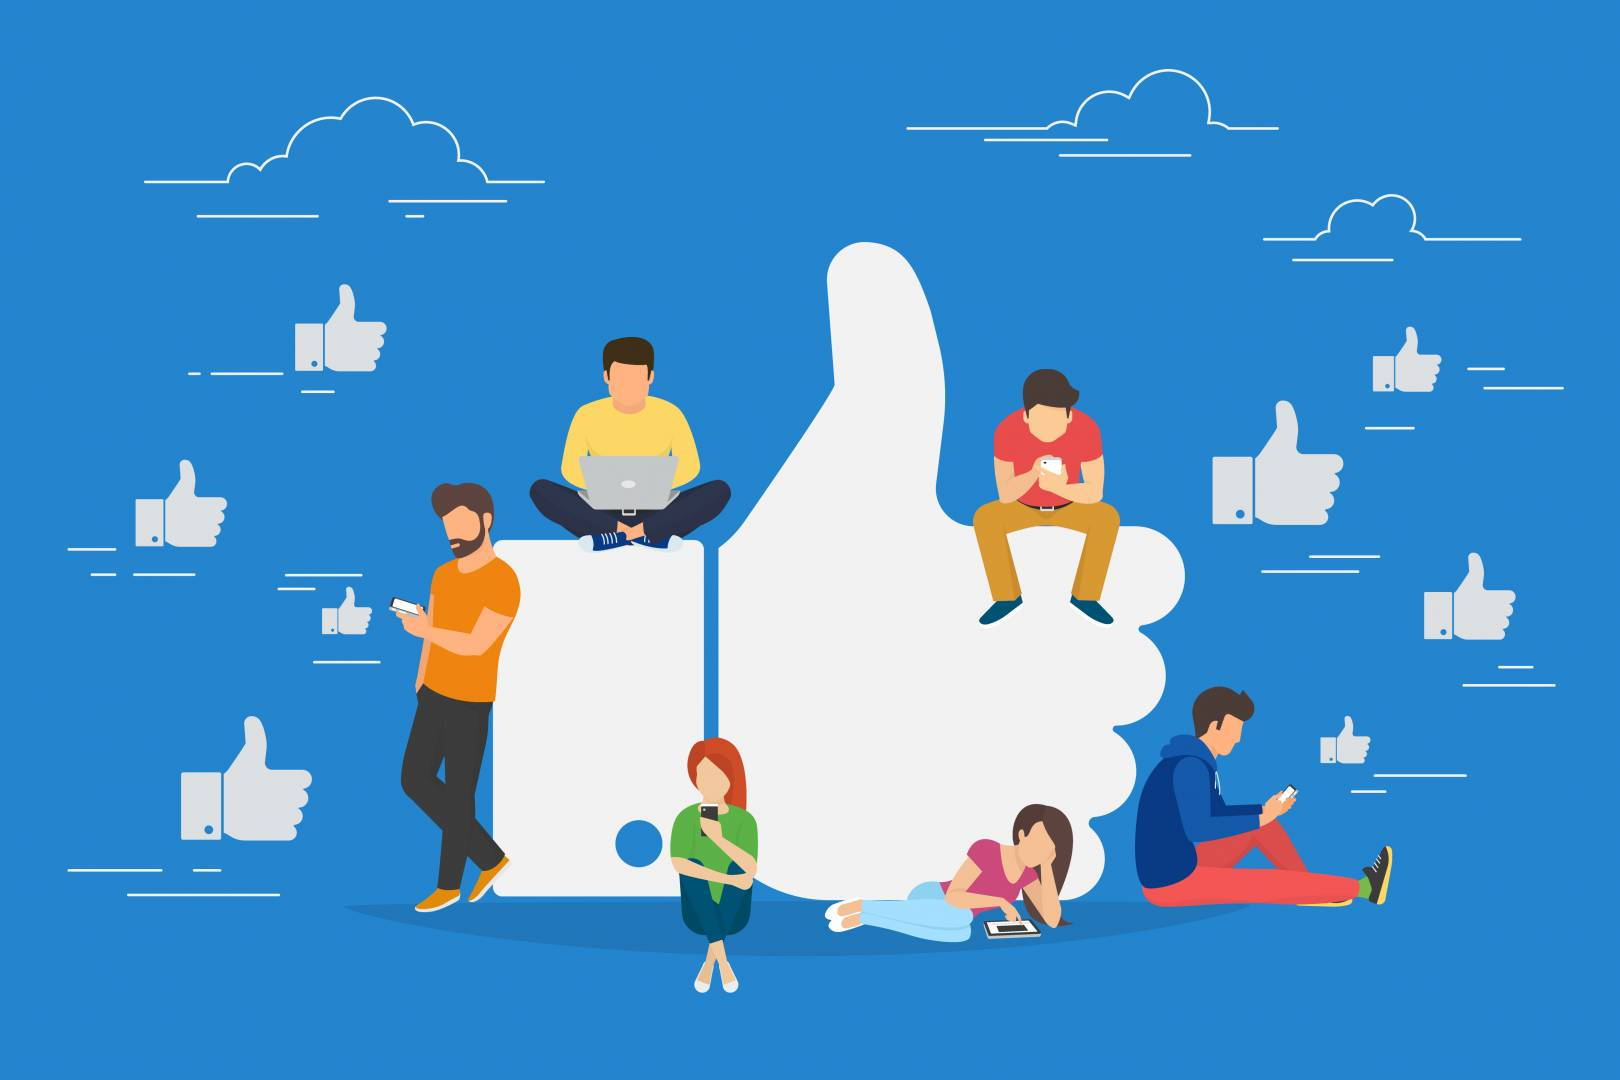 Social Media - Likes - Thumbs Up